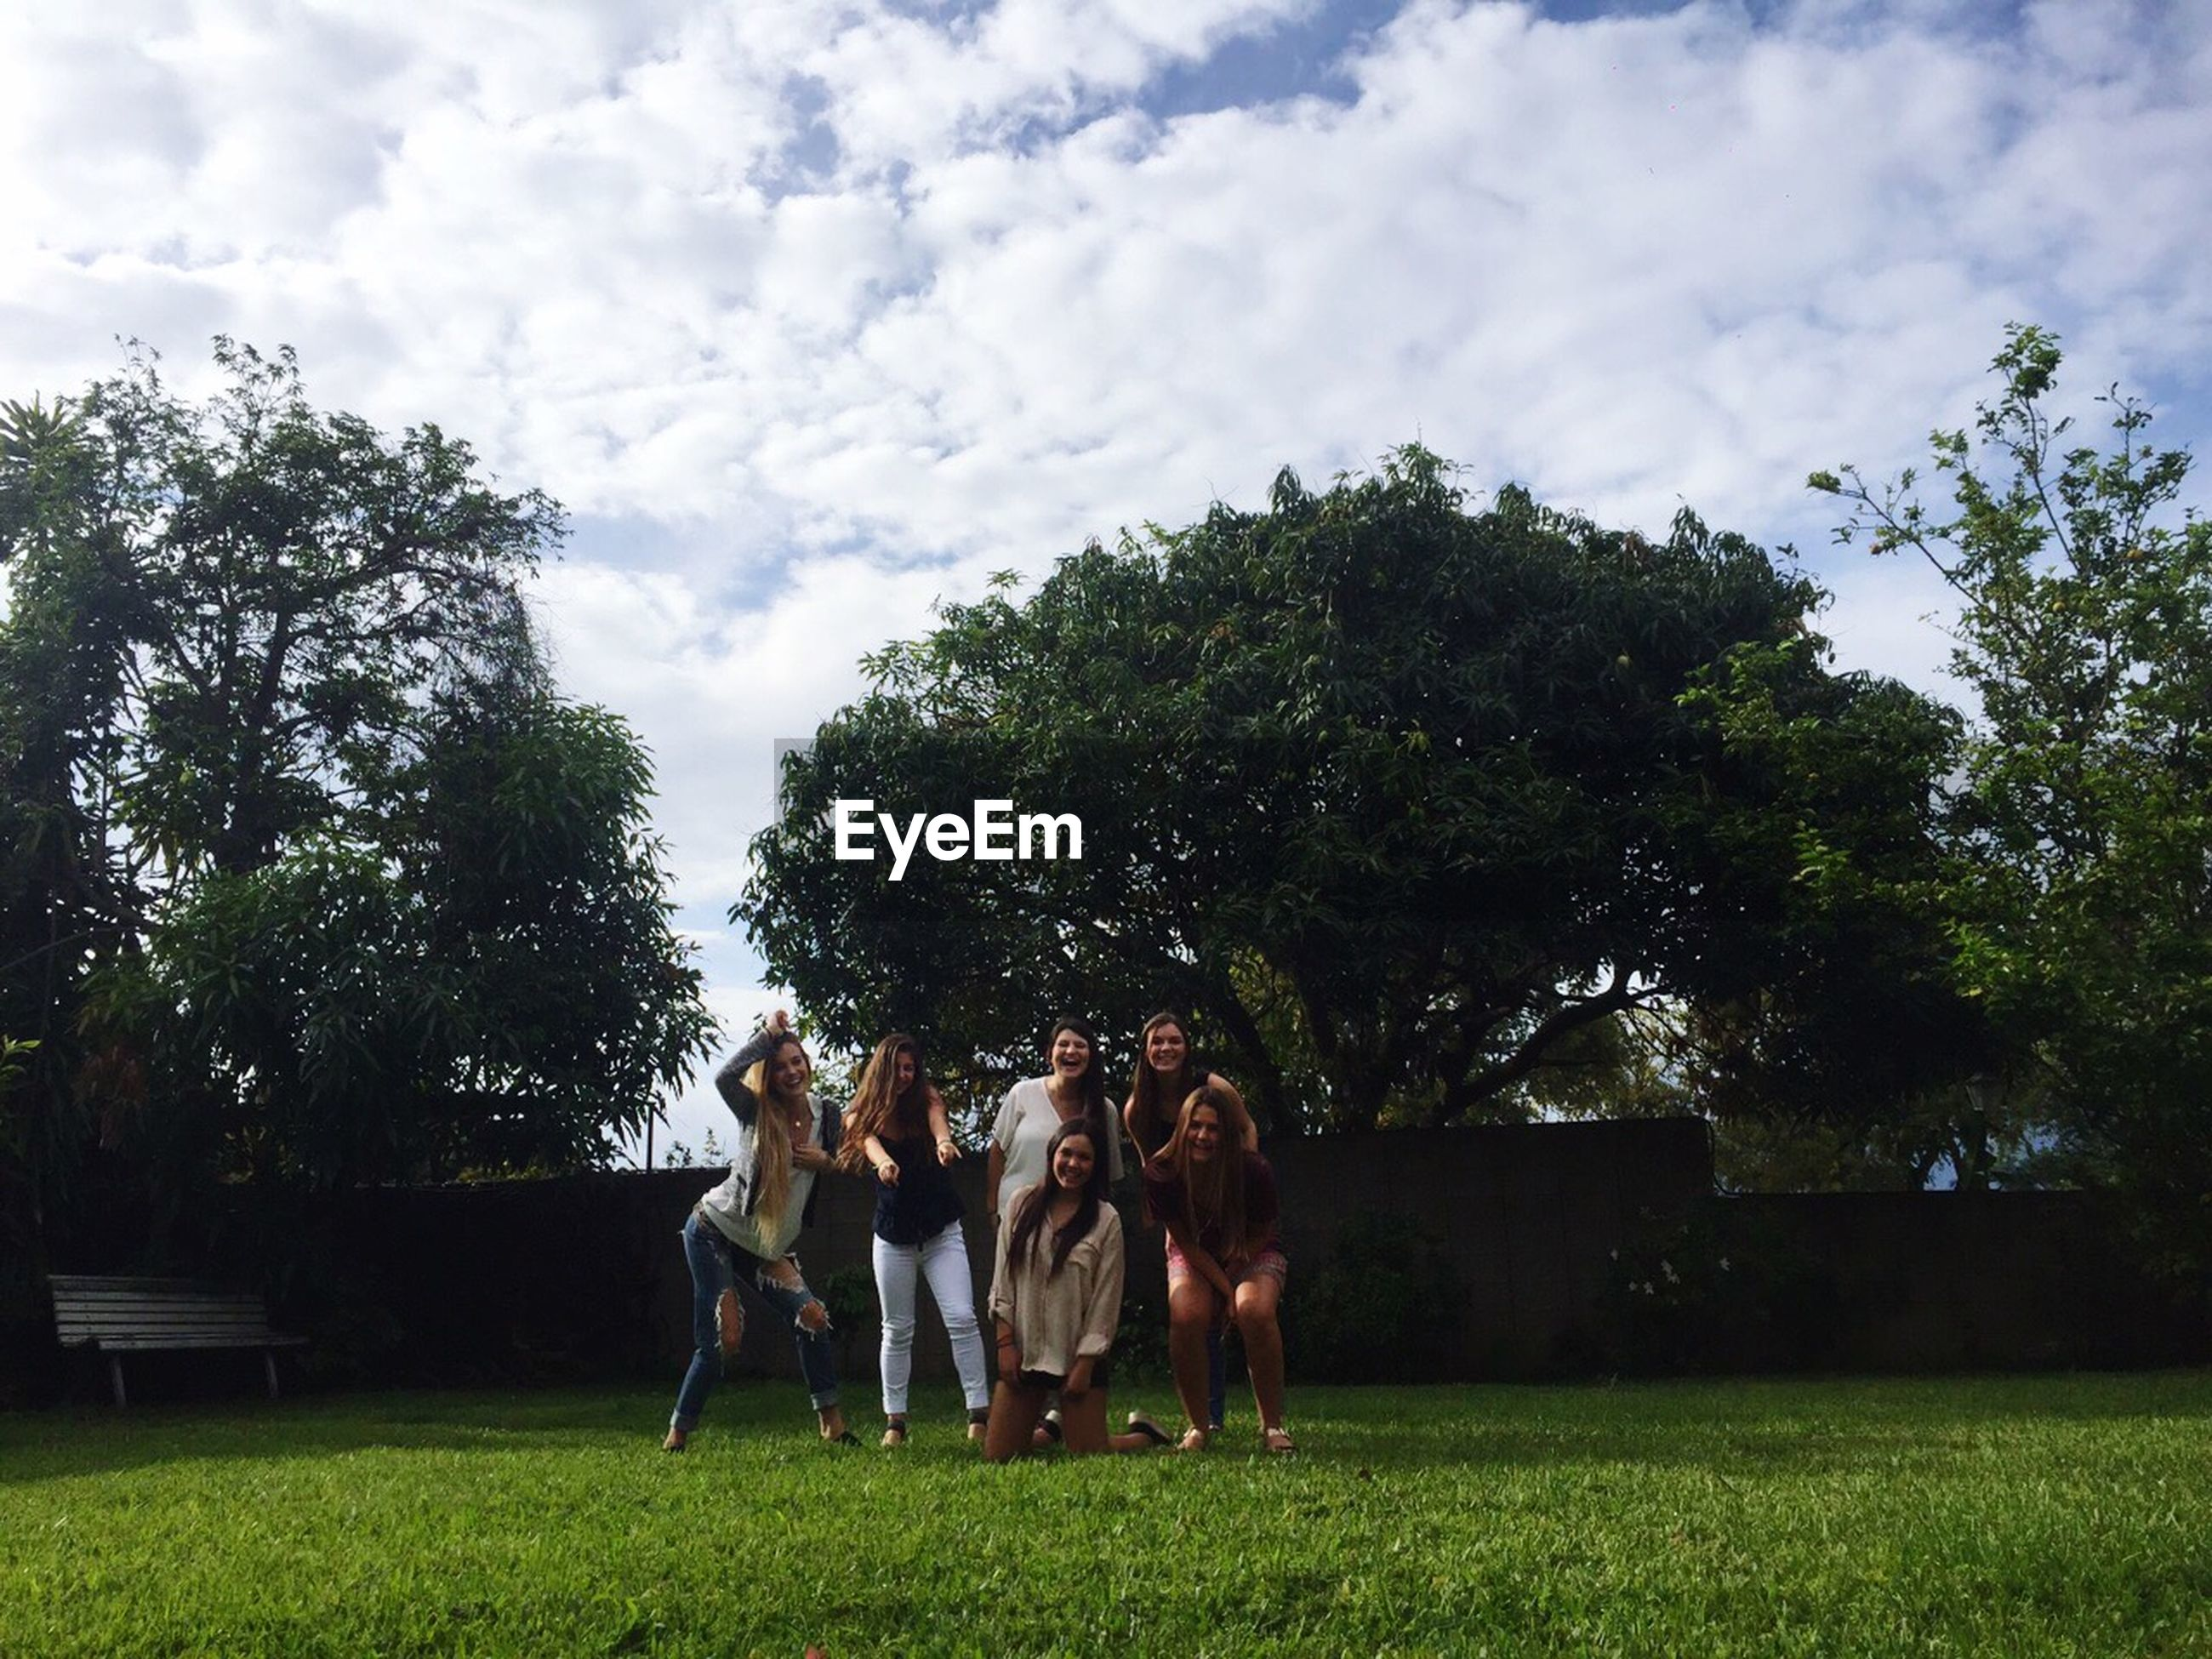 men, grass, tree, lifestyles, togetherness, leisure activity, person, sky, green color, field, bonding, rear view, full length, park - man made space, friendship, relaxation, growth, love